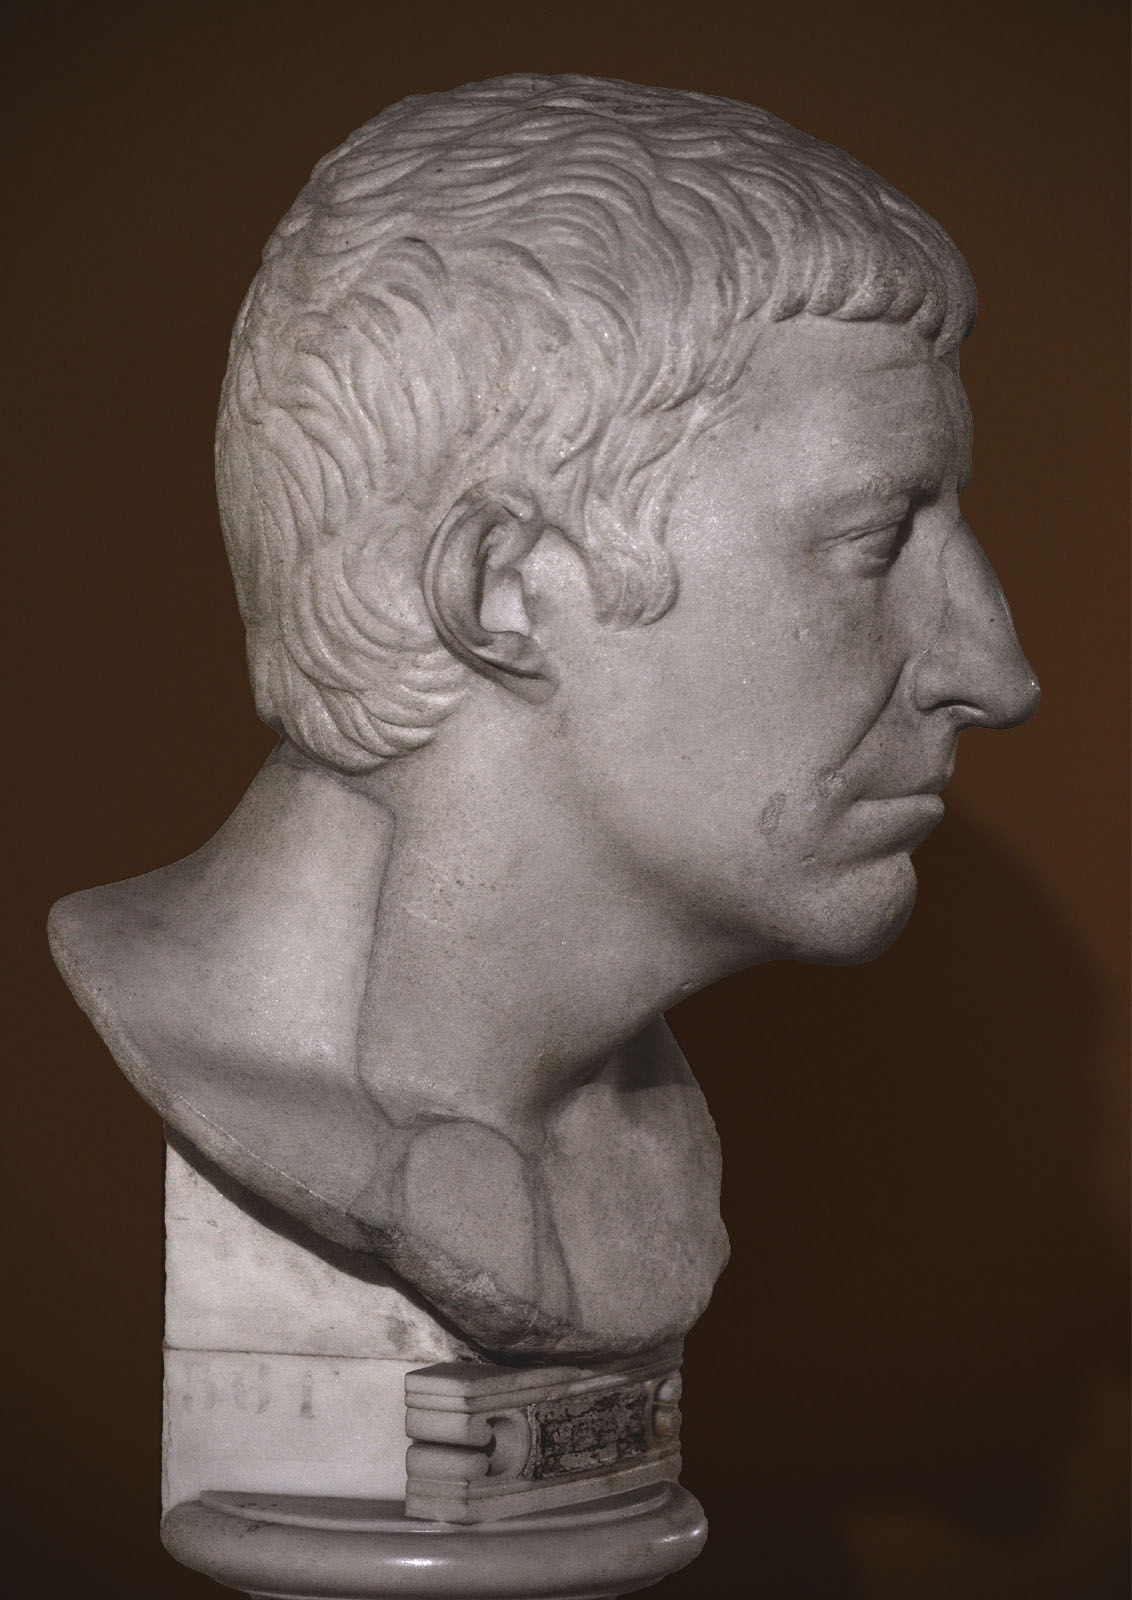 The so-called portrait of Corbulo. Parian marble. 1st cent. BCE. Inv. No. MC 561. Rome, Capitoline Museums, Museum Montemartini (Centrale Montemartini), I. 55